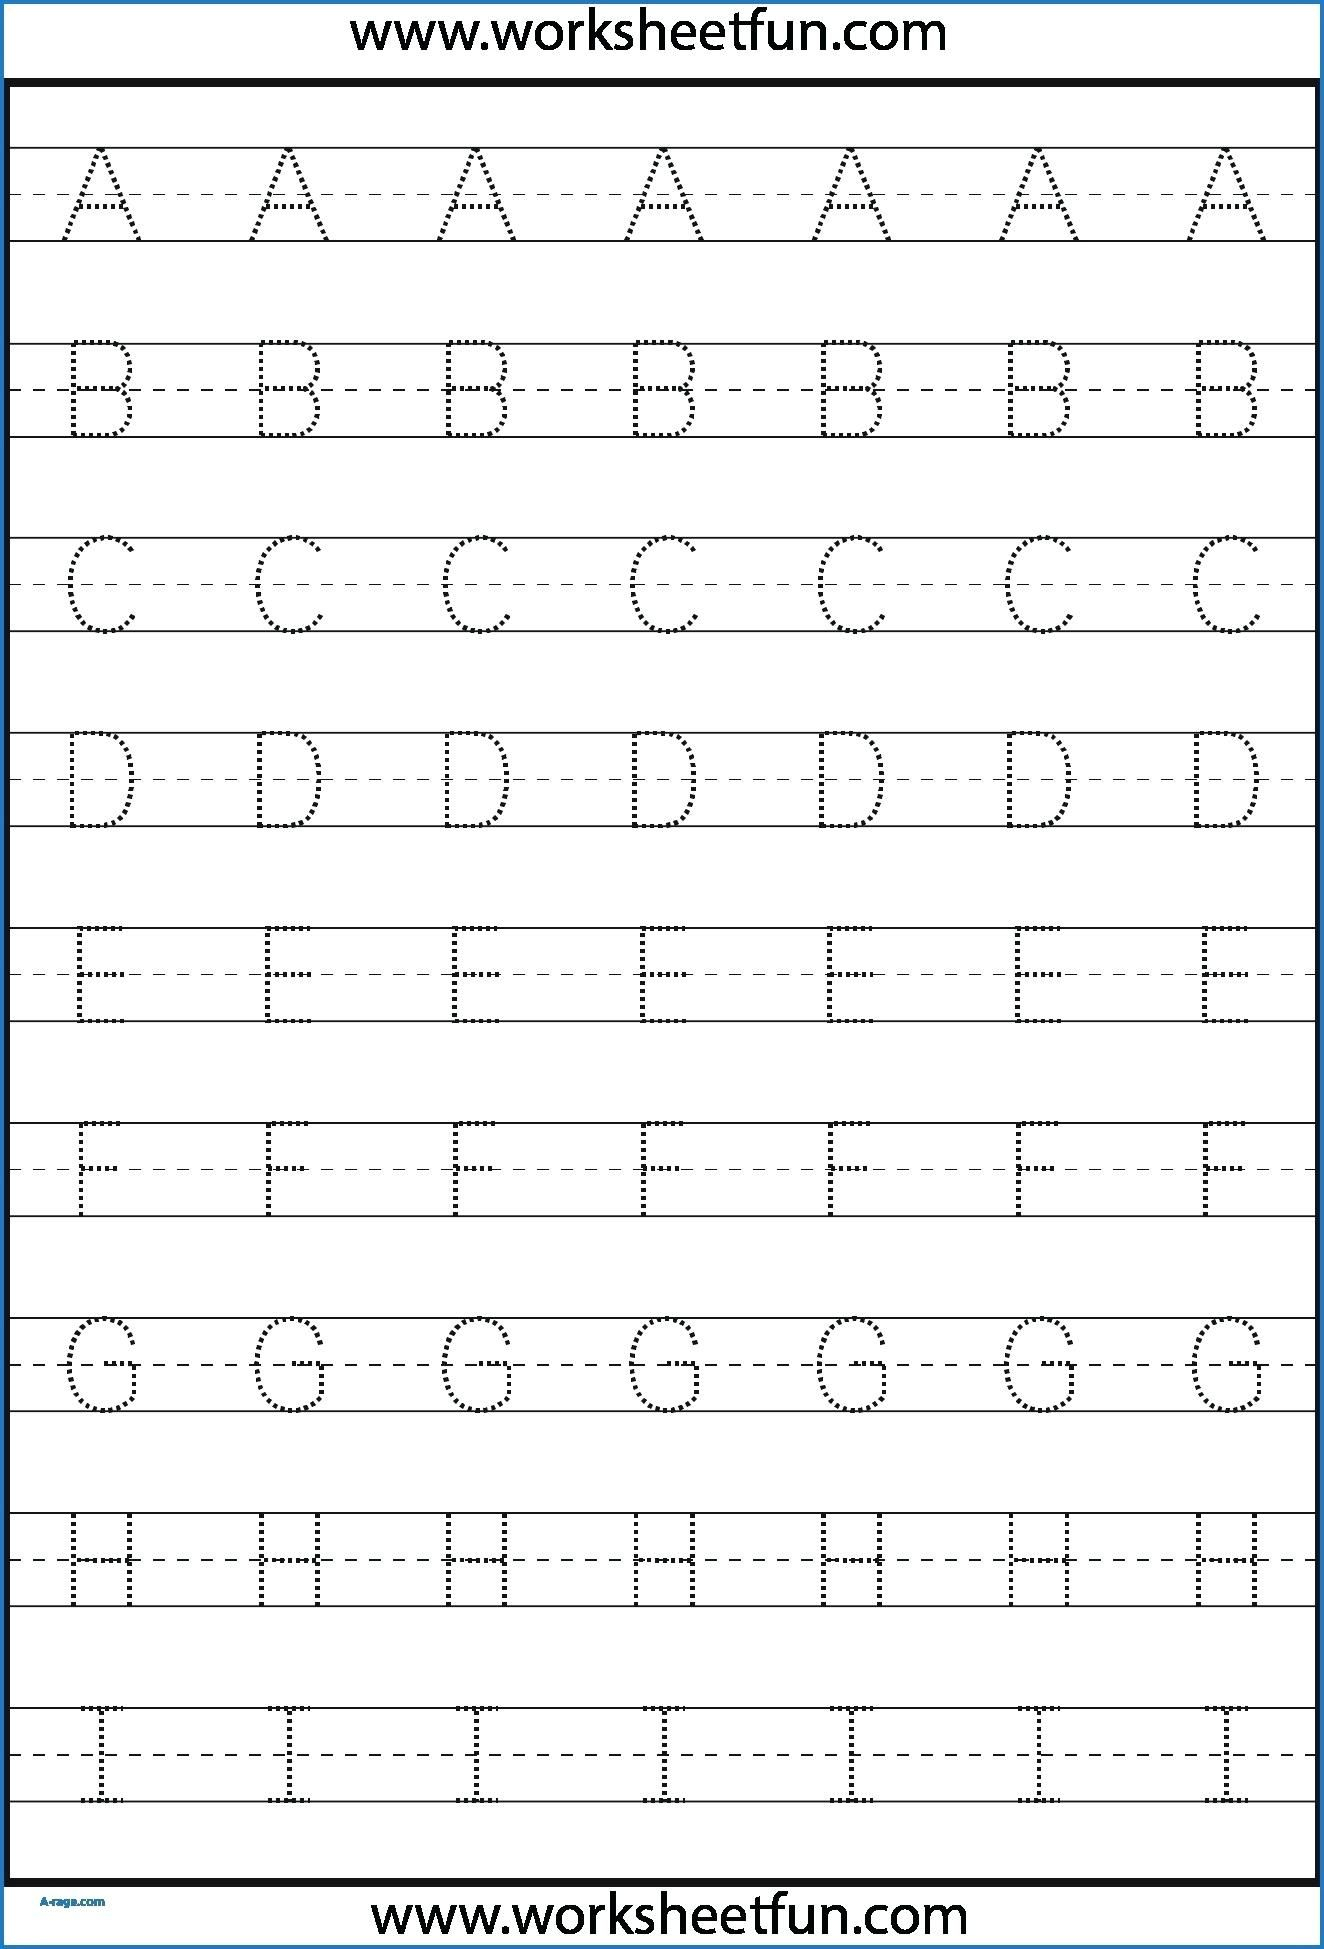 Kindergarten Letter Tracing Worksheets Pdf - Wallpaper Image within A-Z Tracing Letters Worksheets